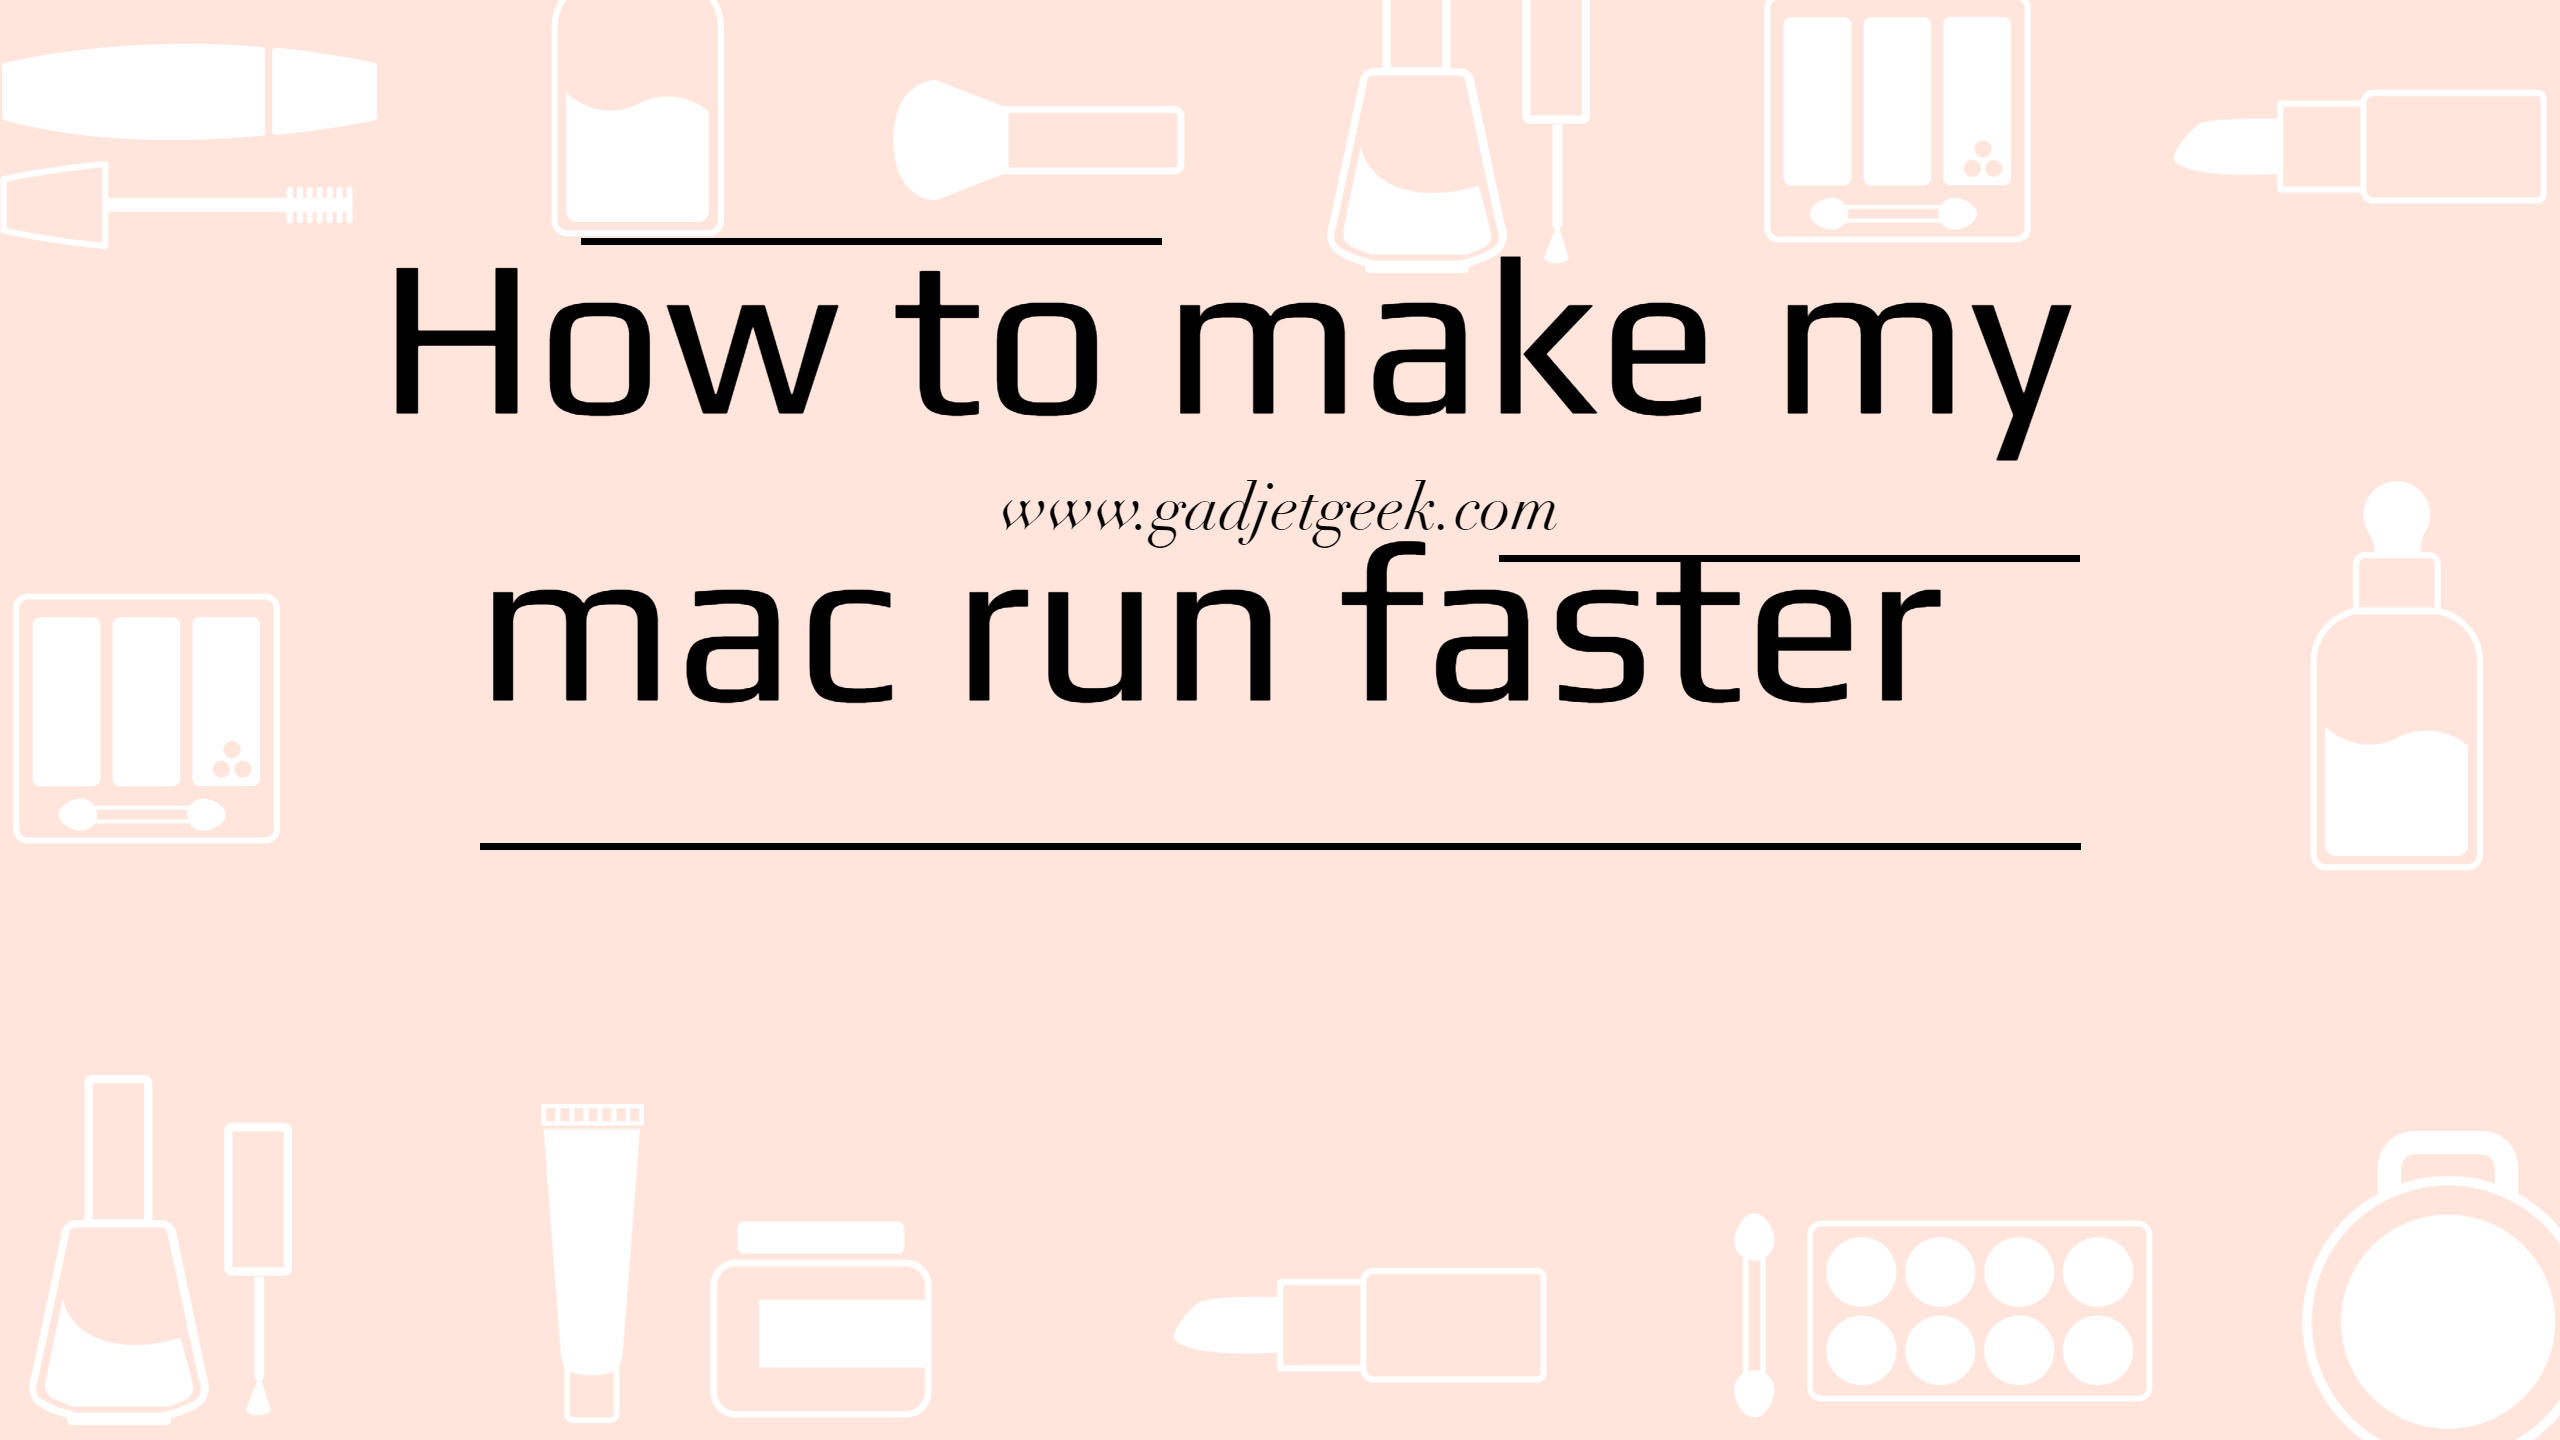 How to make my mac run faster